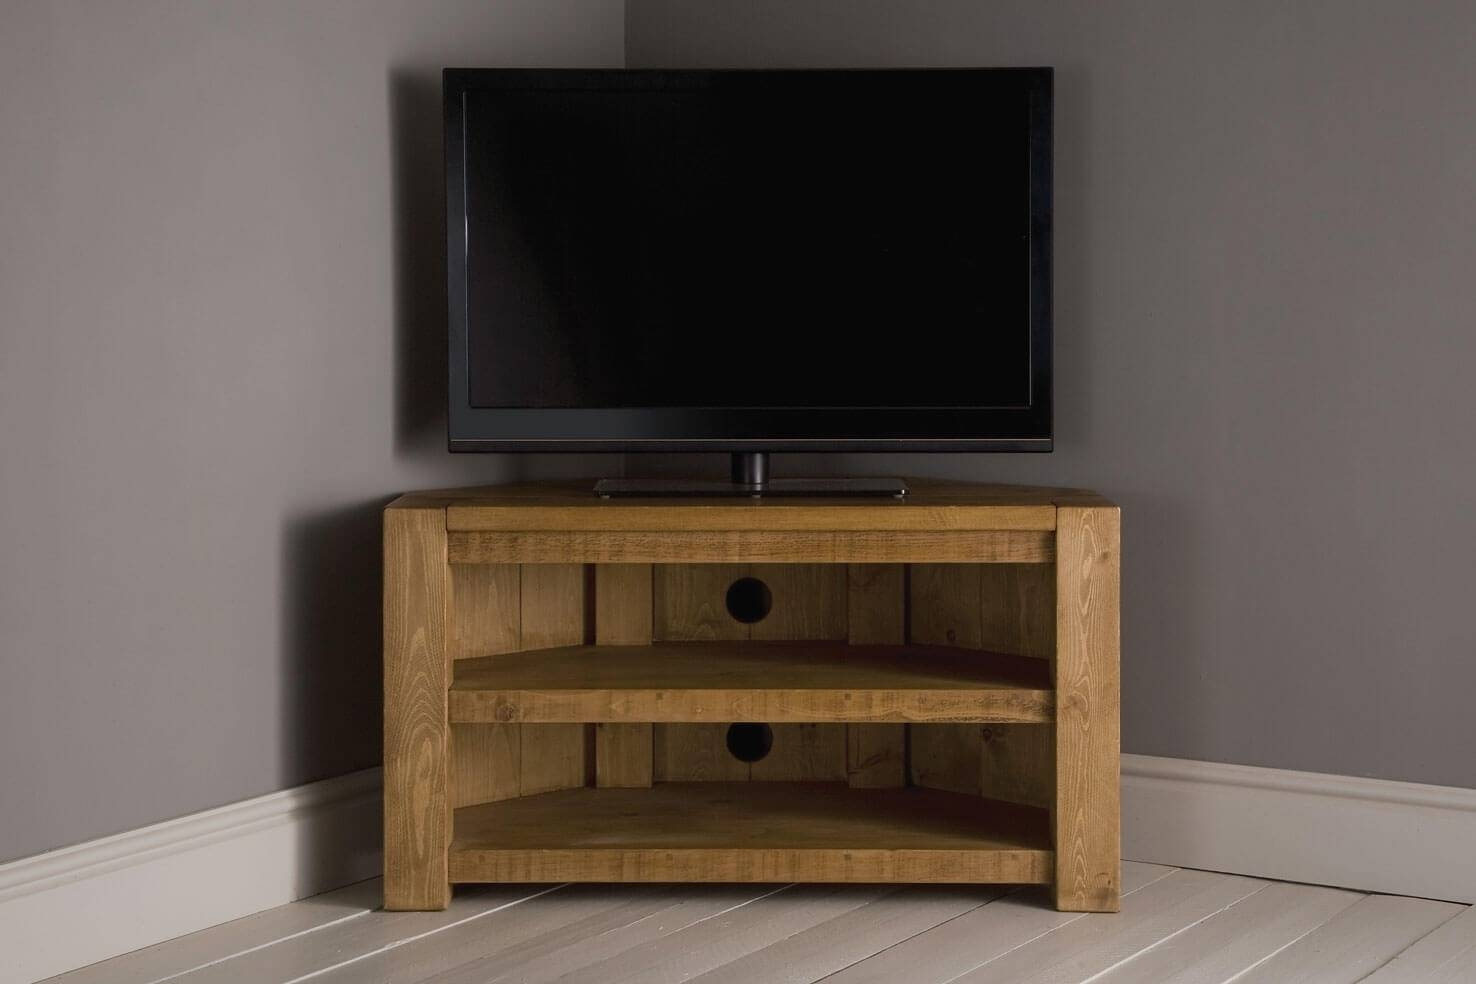 Plank Beam Corner Tv Unit With Shelfindigo Furniture For Wooden Corner Tv Units (View 2 of 15)